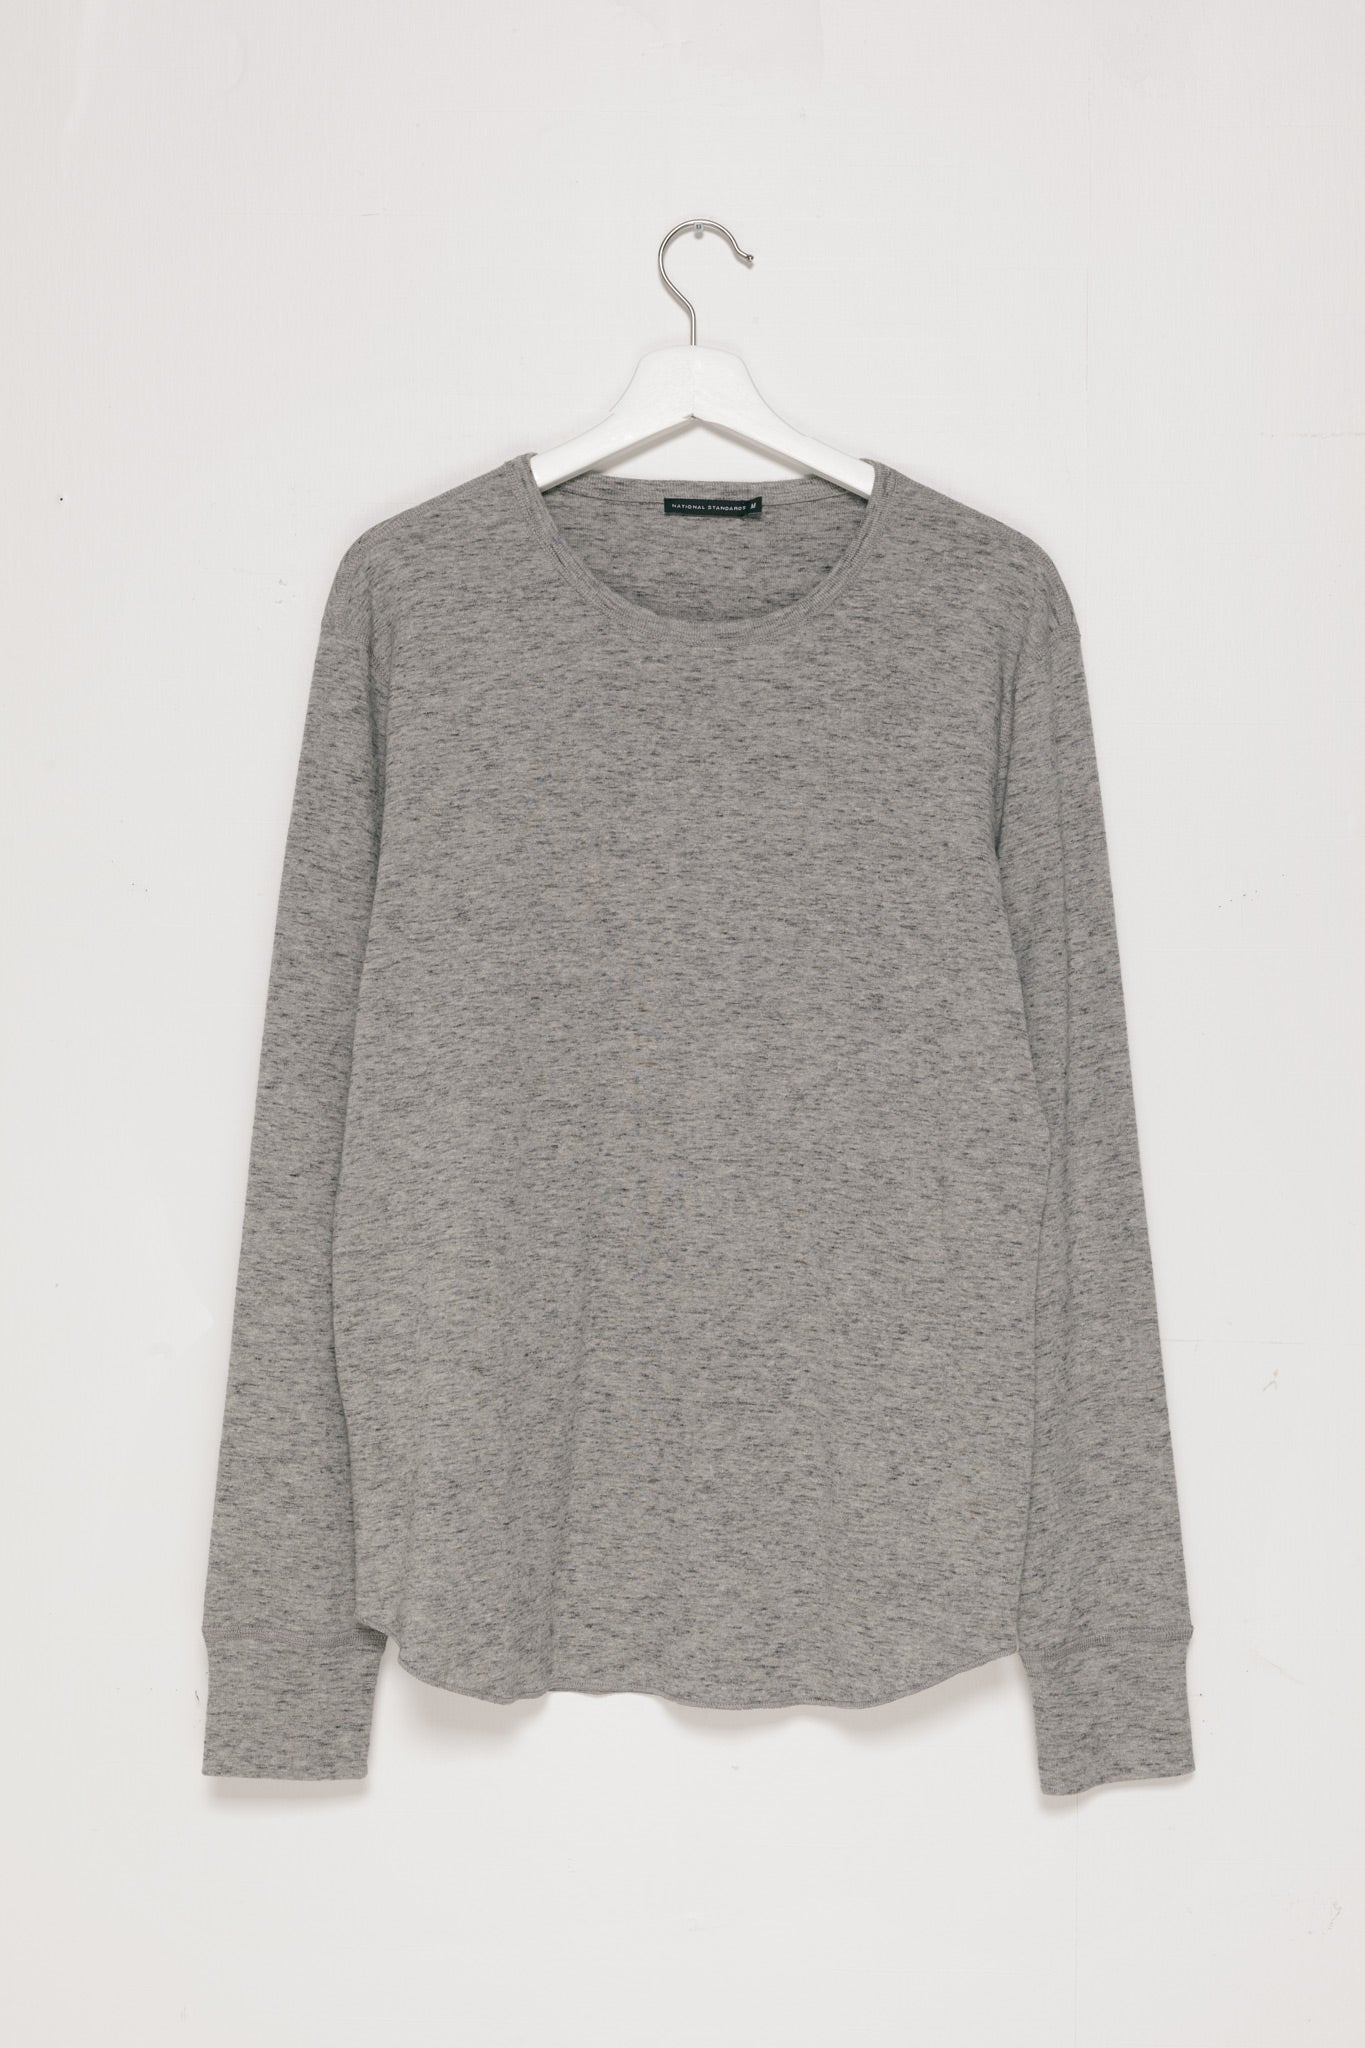 Slub 1x1 Long sleeve tee in Grey flat-lay